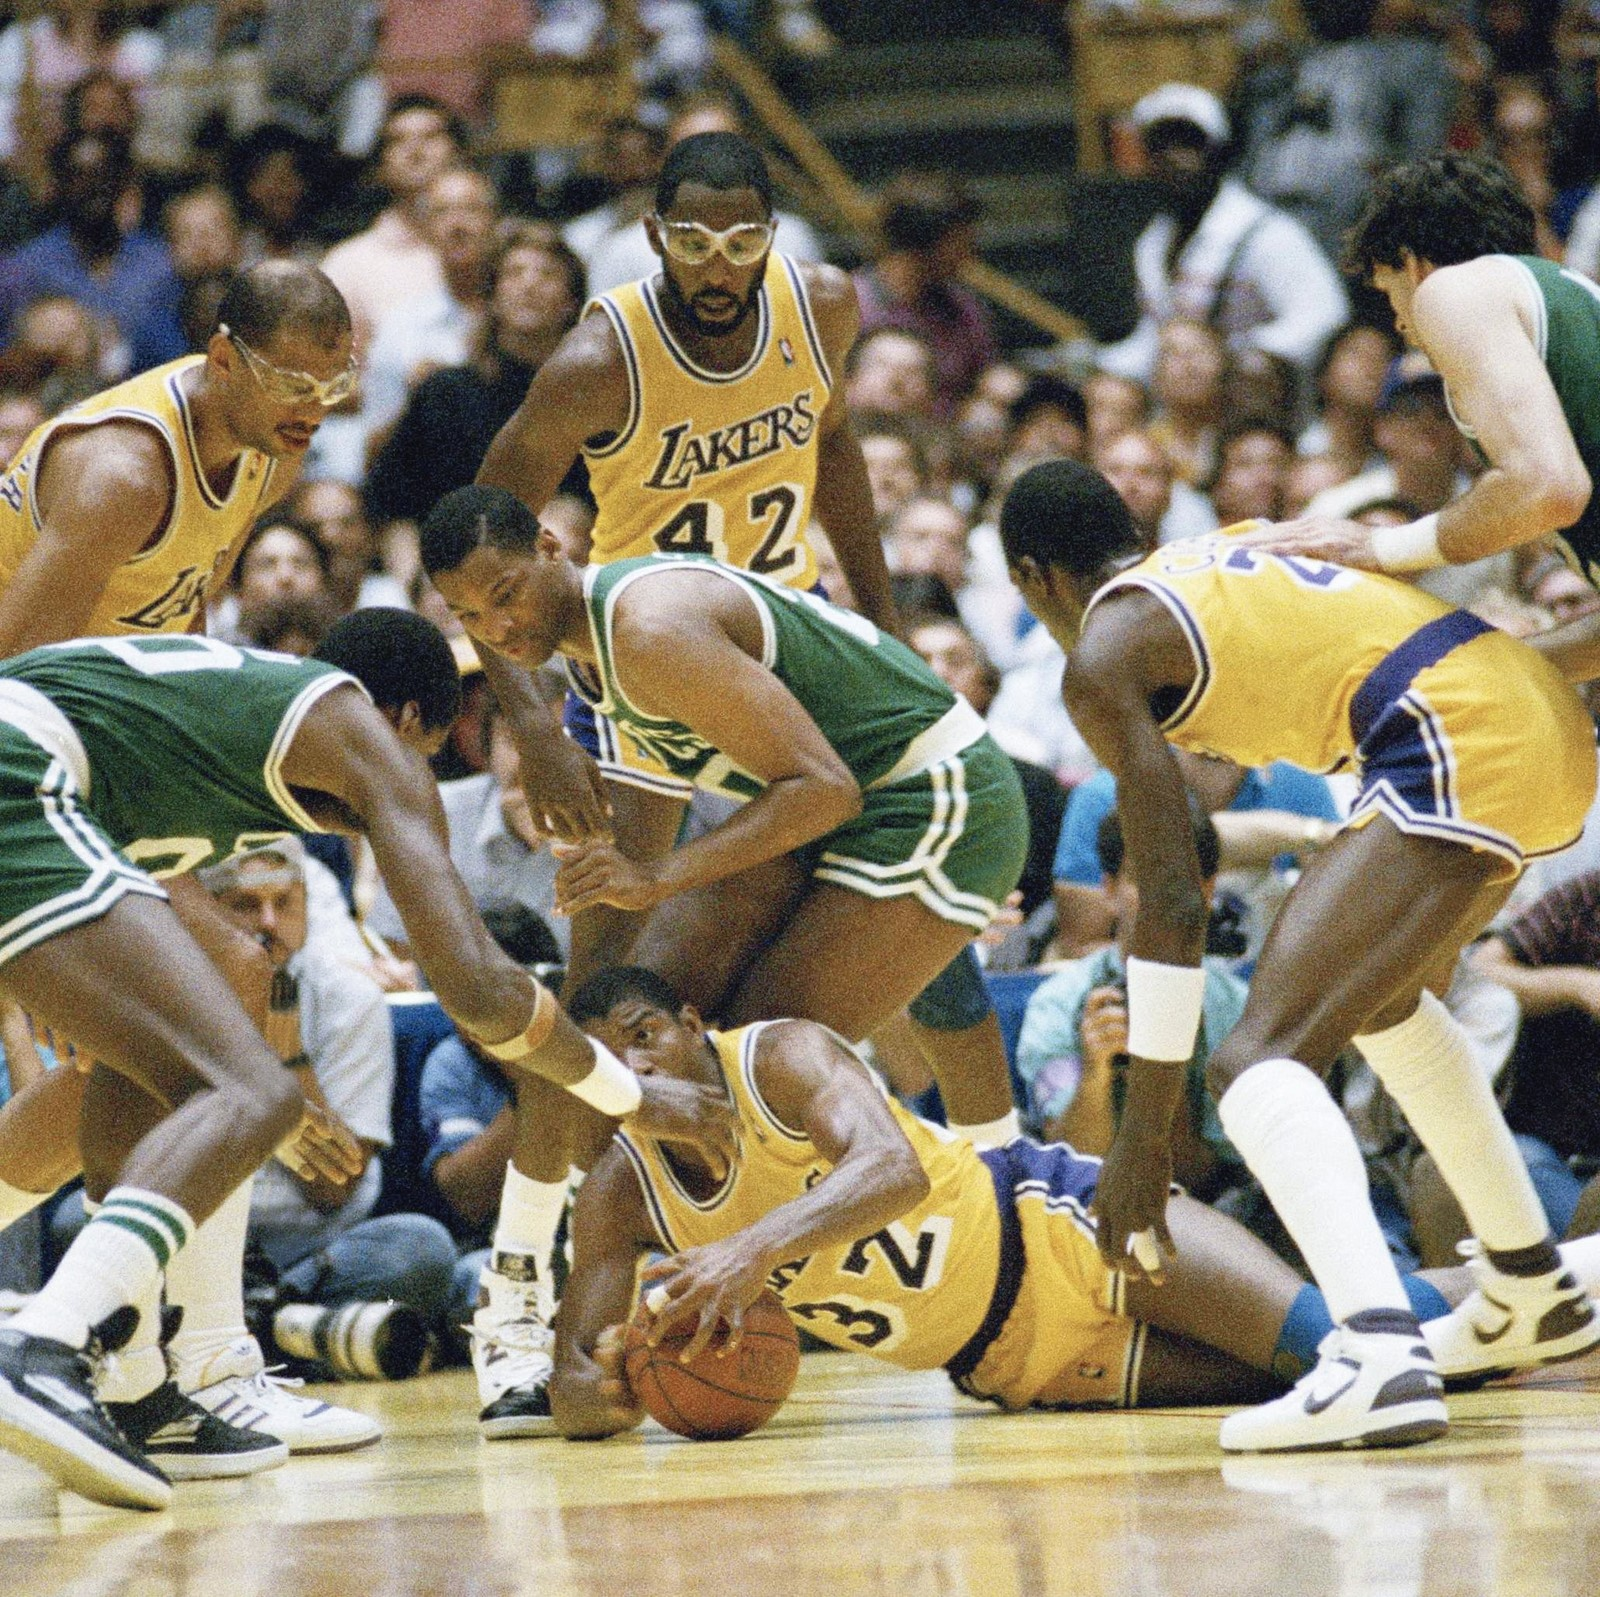 02d7b81cc36 Magic Johnson (on floor) and Kareem Abdul-Jabbar, left, tangle with the  Celtics in the 1987 NBA Finals. Much like today's Warriors, the Lakers  collected ...